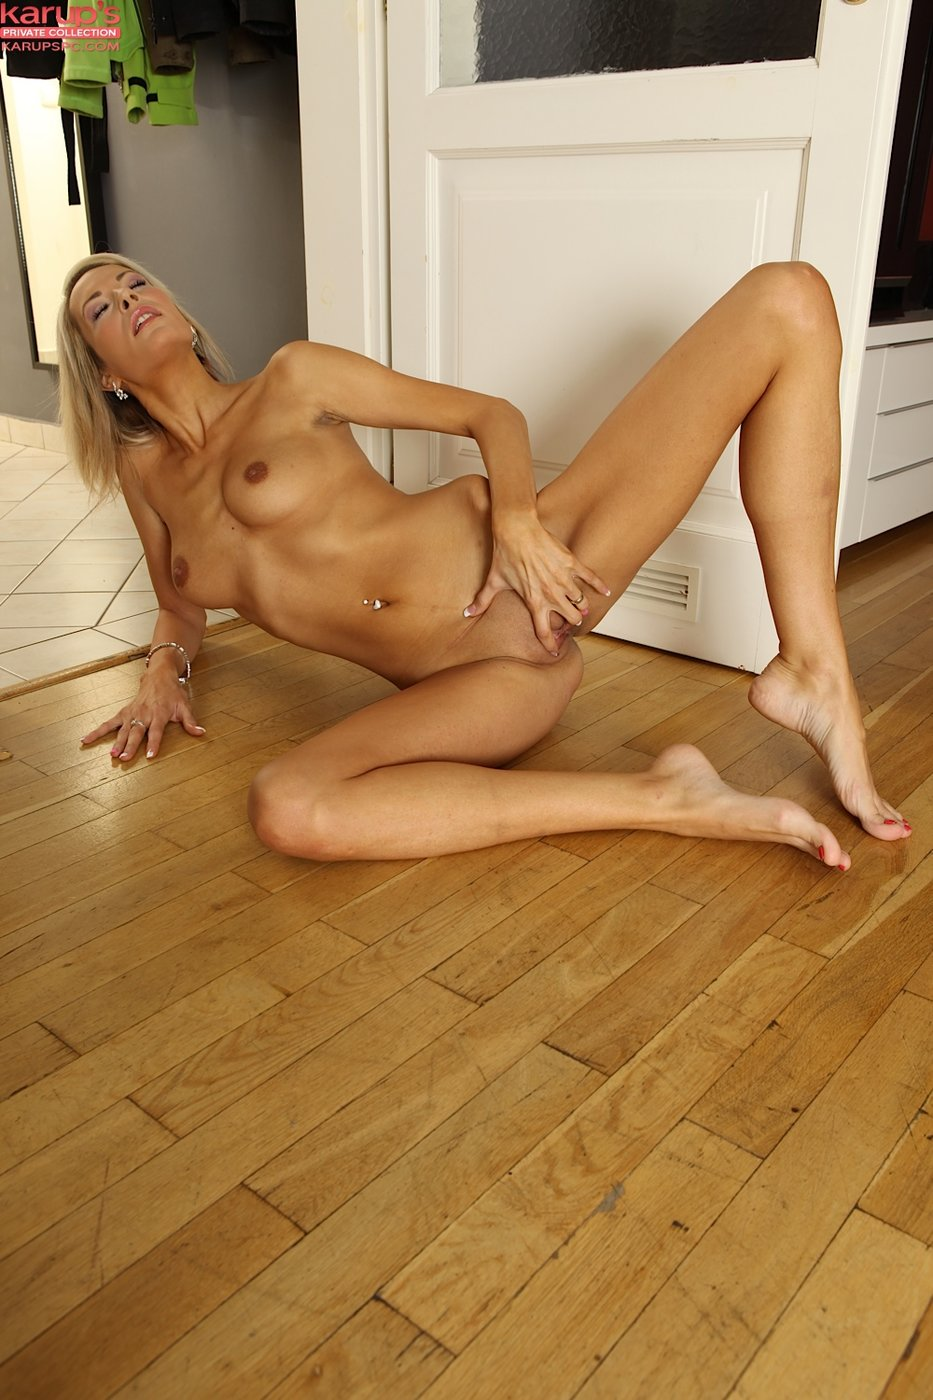 Milf babe decides to offer her best on first date Part 2